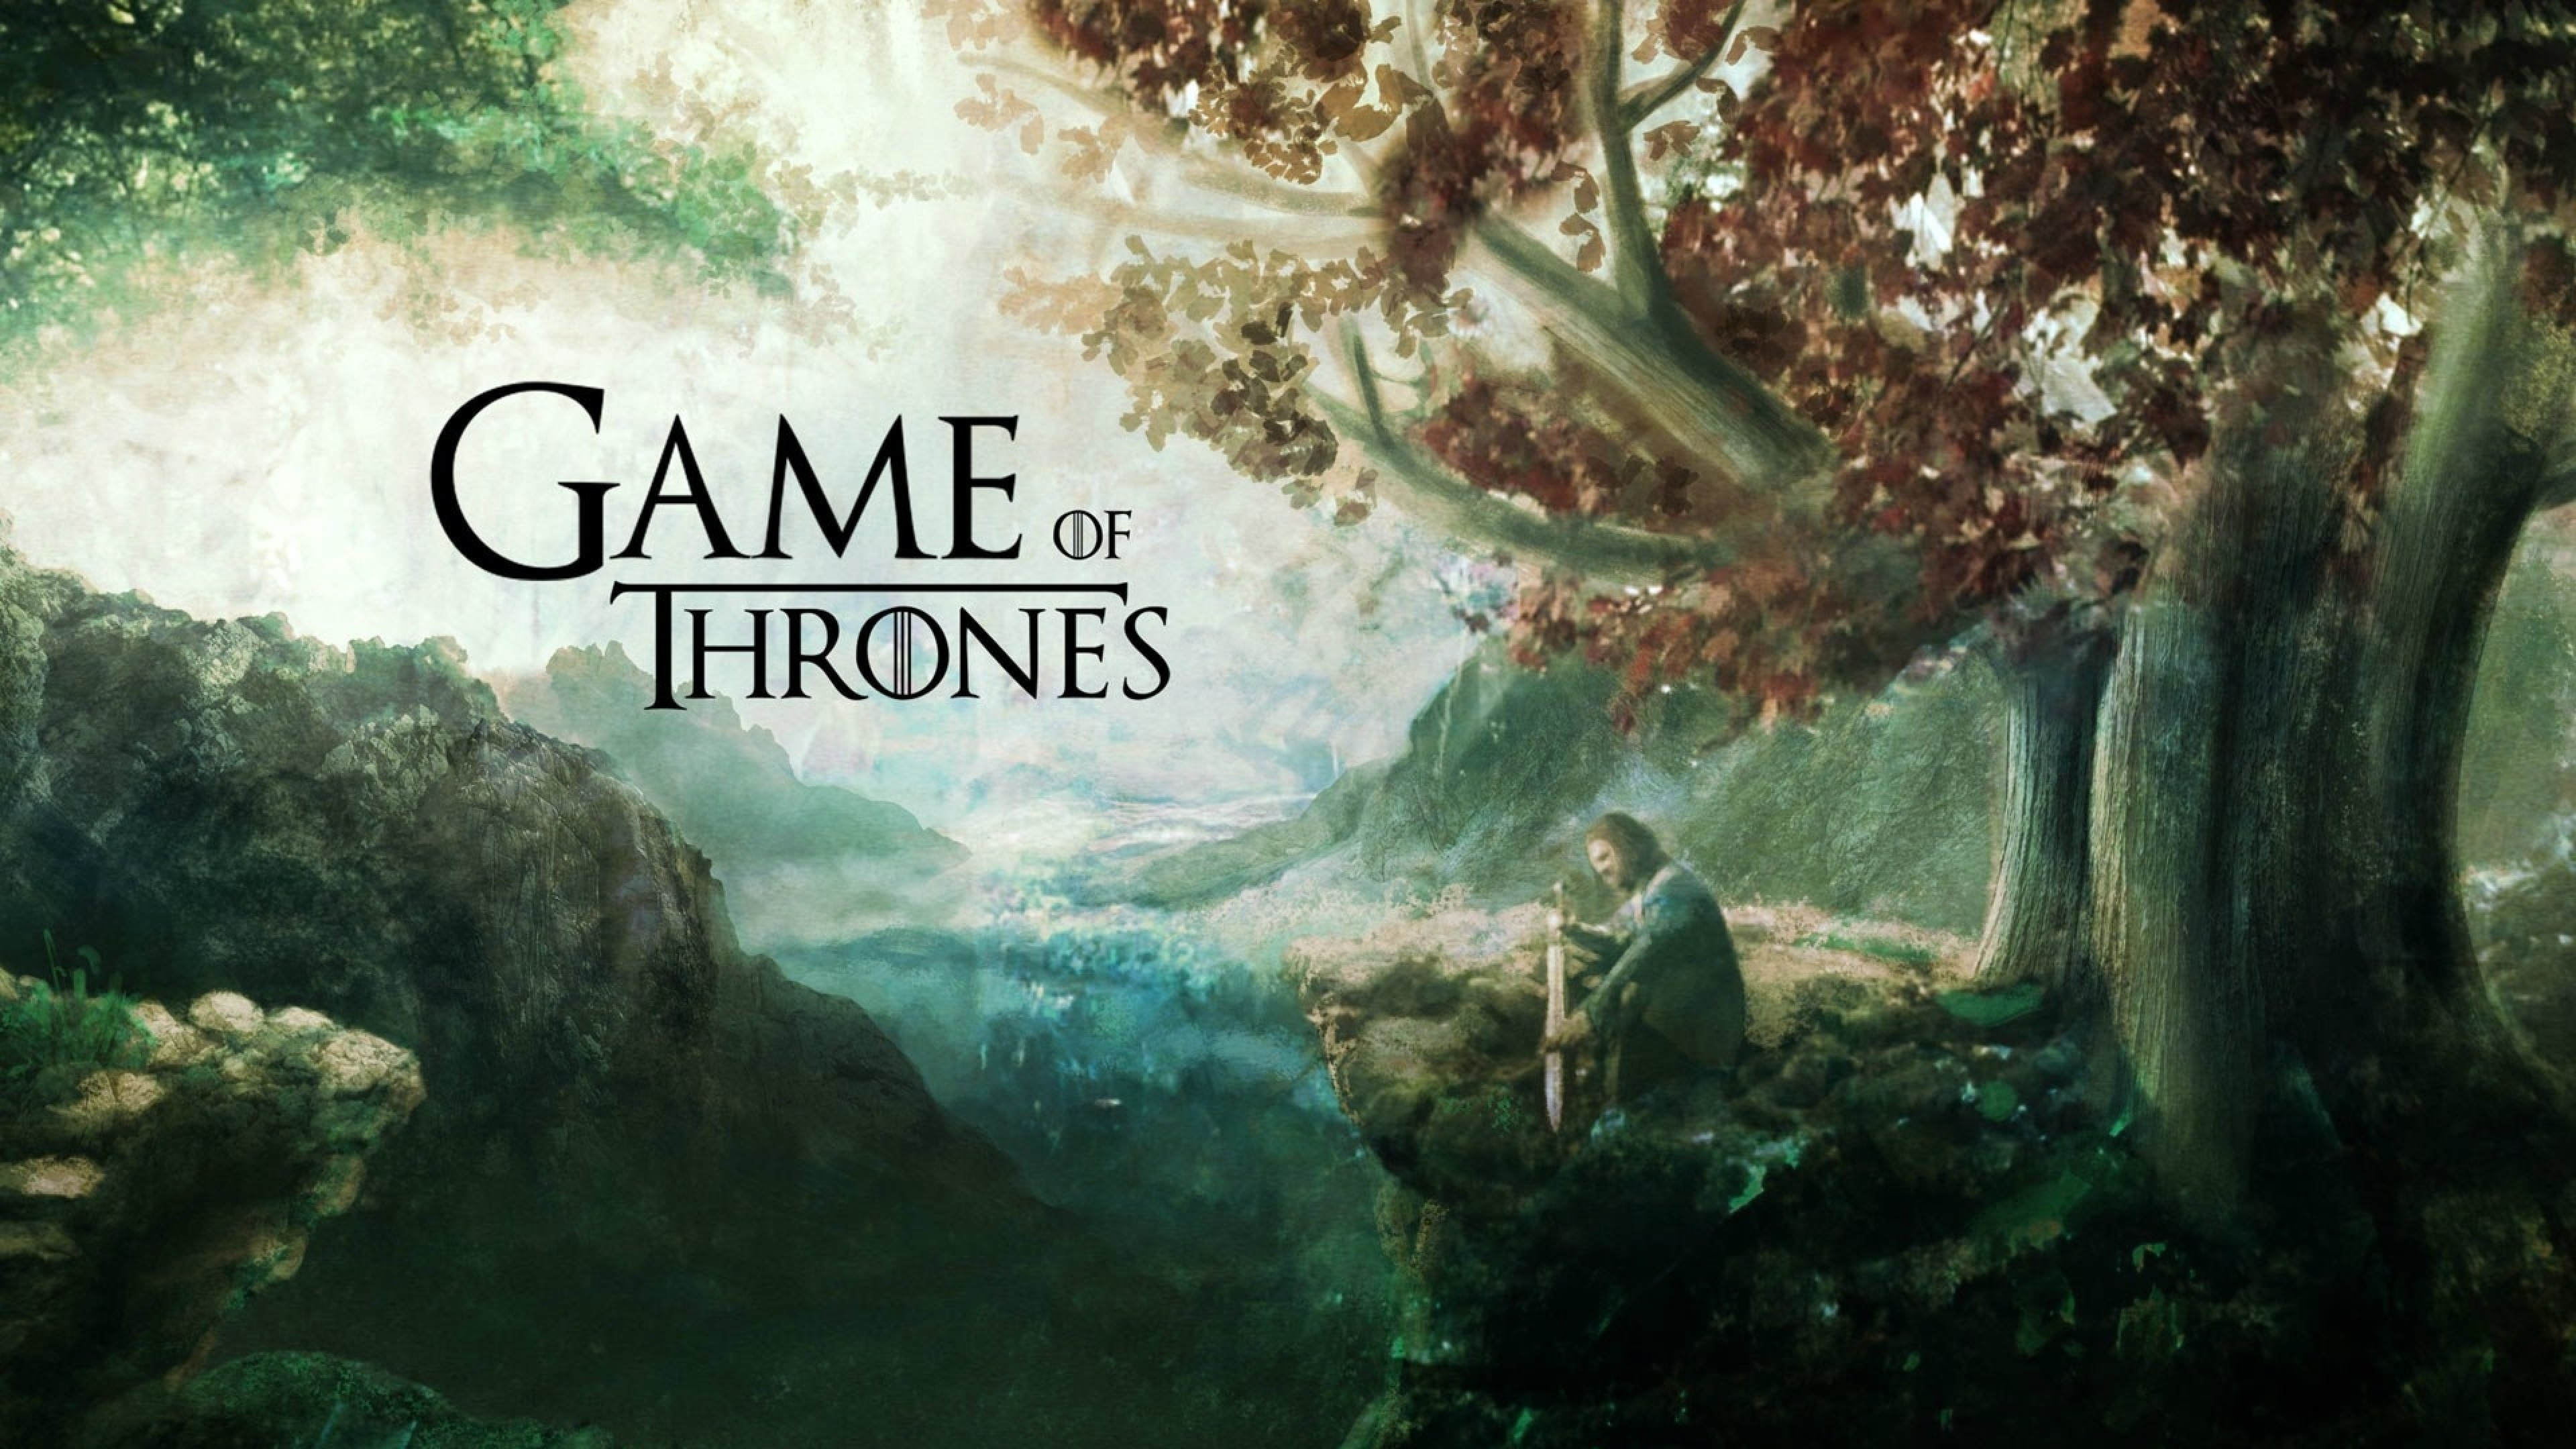 Preview Wallpaper Game Of Thrones, Game, Cyanide Studio, - Game Of Thrones 1920x1080 Hd - HD Wallpaper